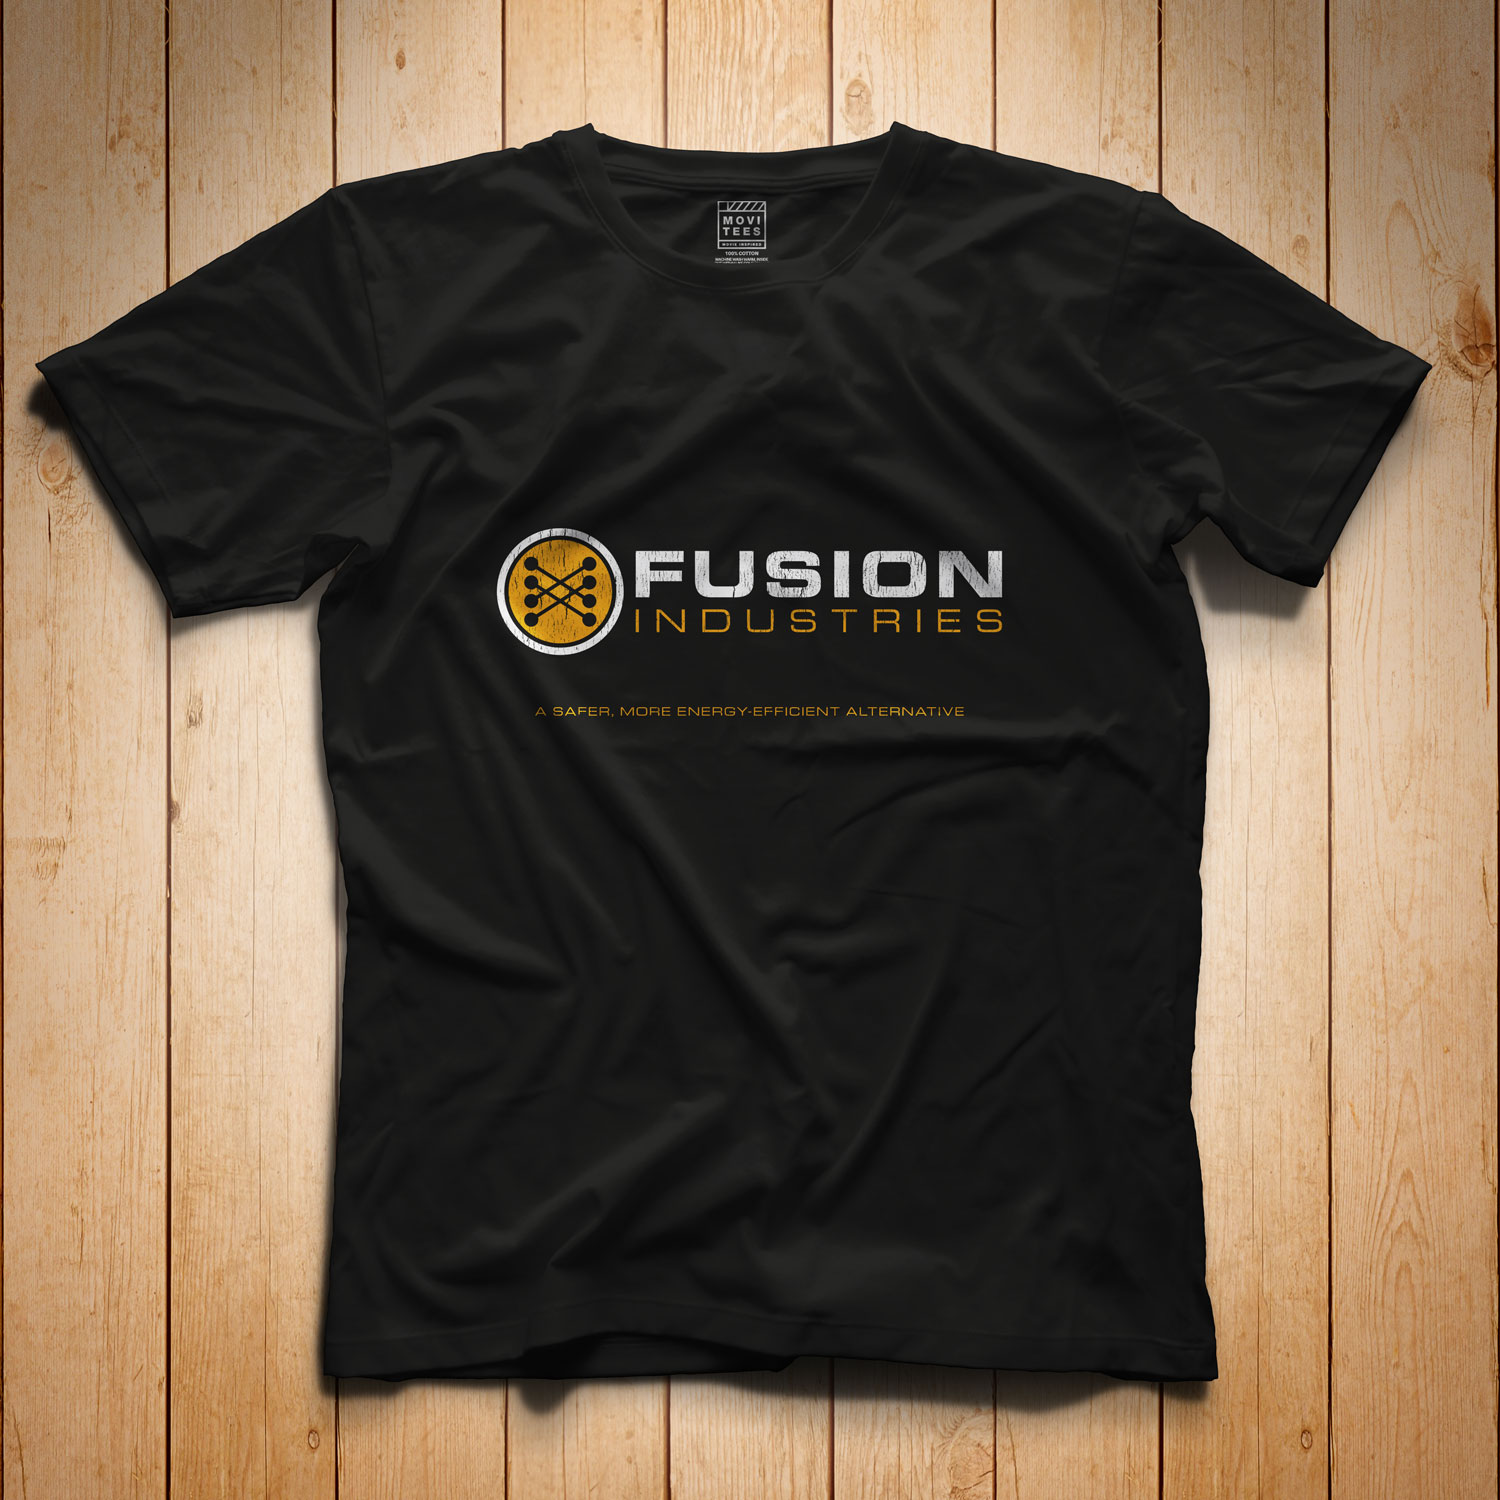 Fusion-Industries-Back-to-the-Future-Inspired-TShirt-by-MoviTees_B.jpg